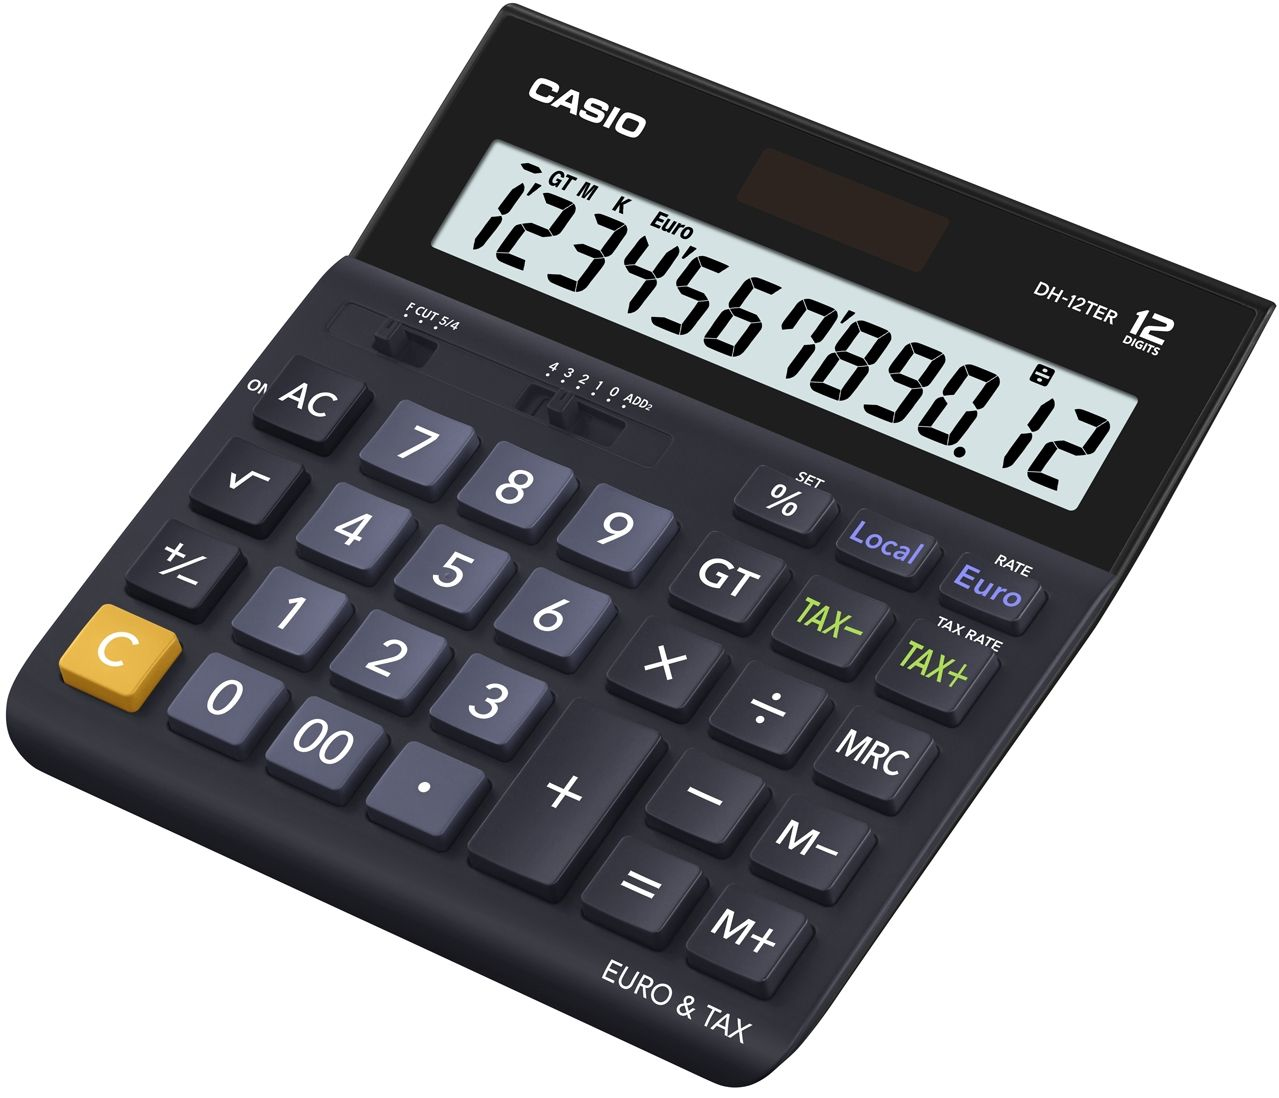 Desktop Basic Black calculator (DH-12TER)